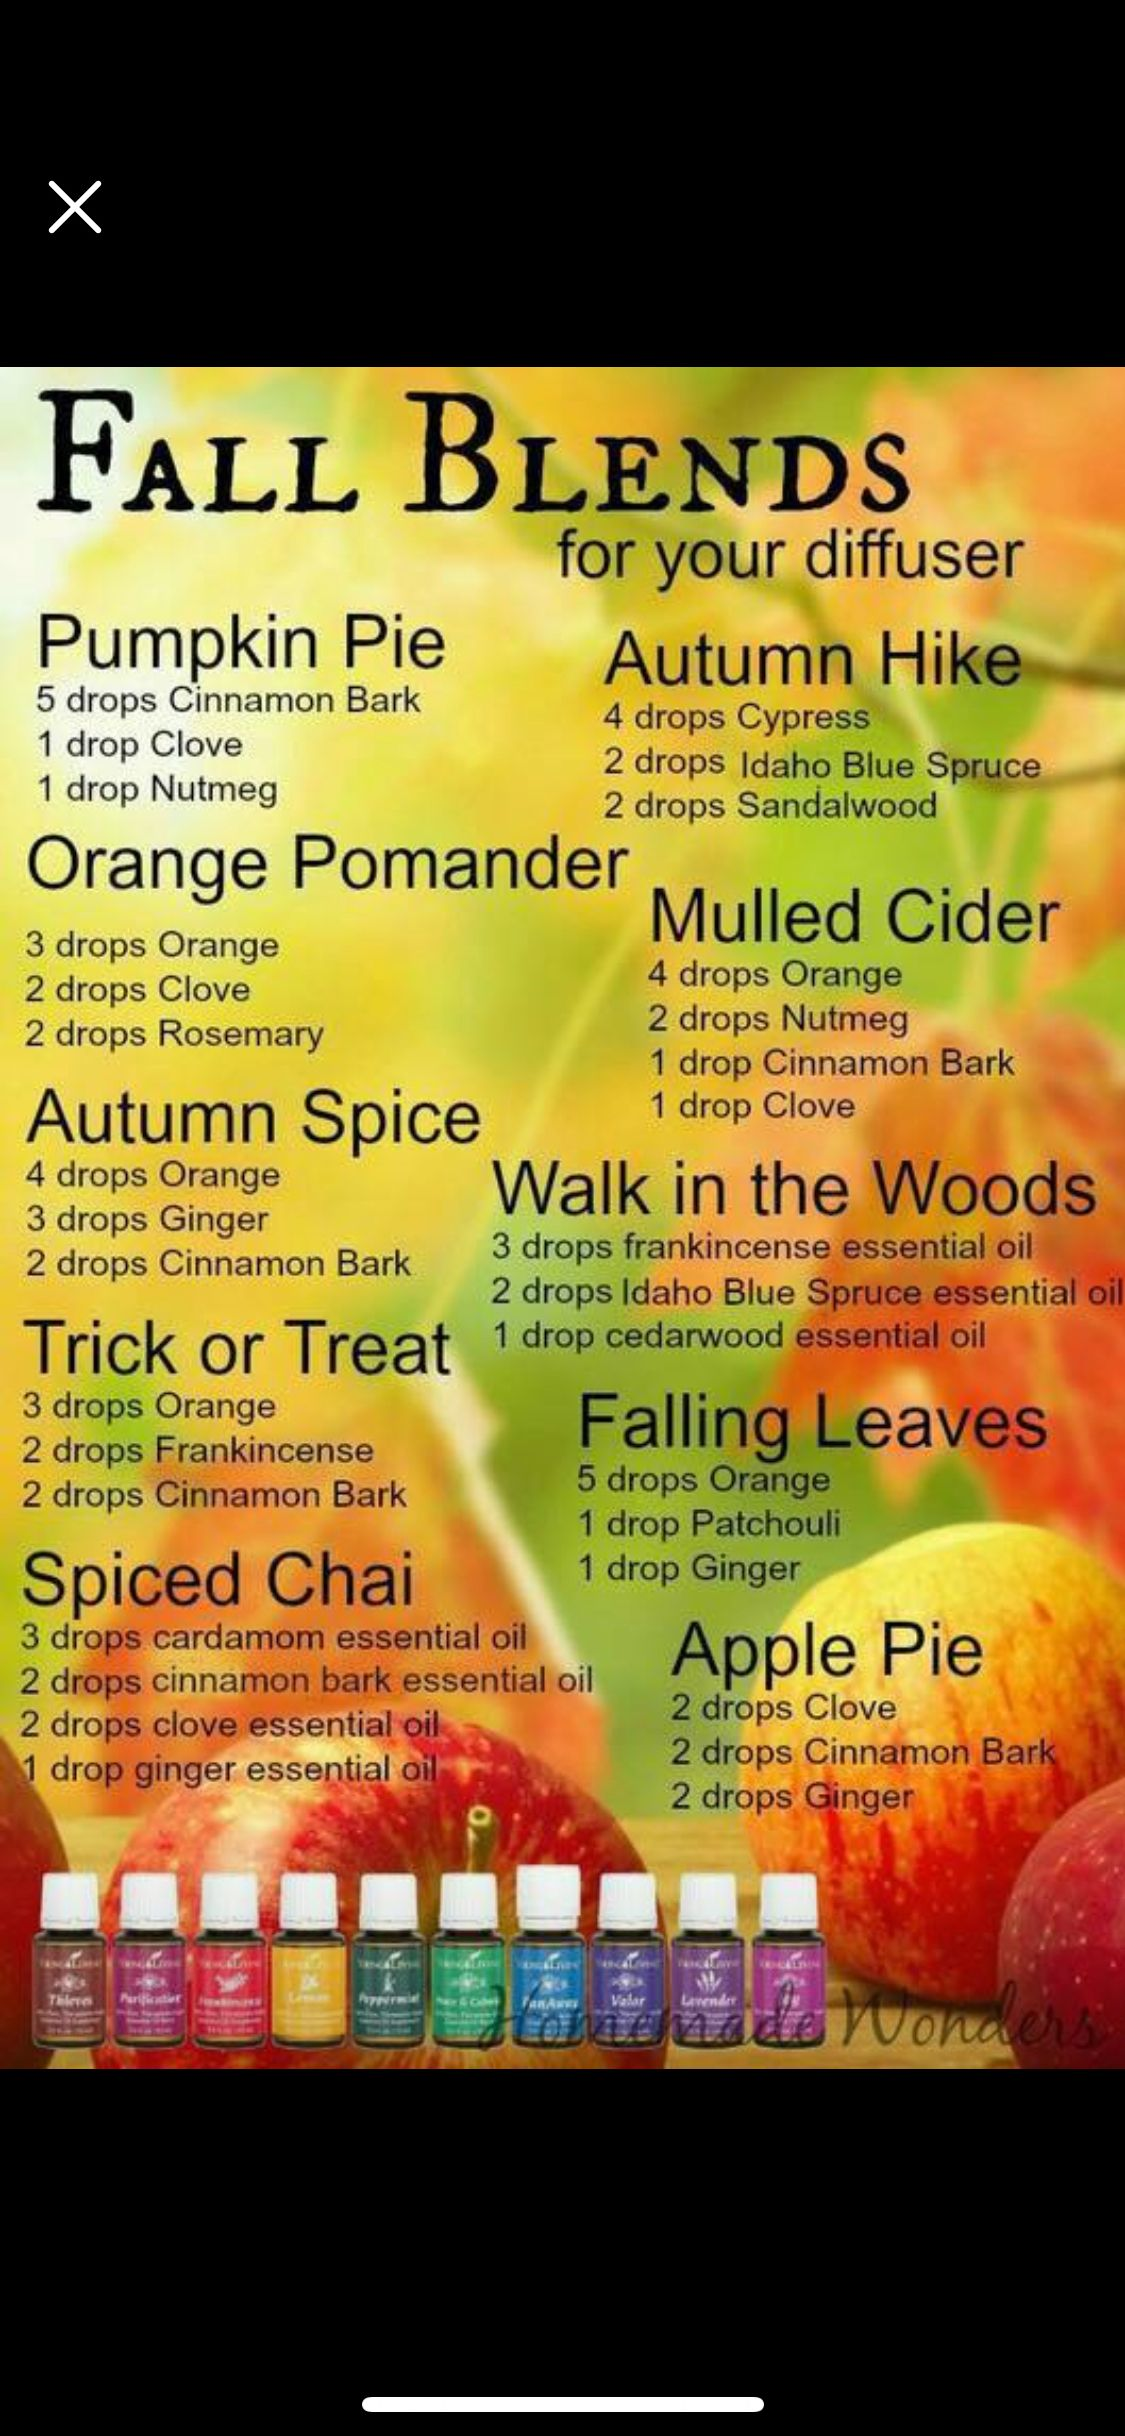 Pin by Marianne Sniezek on Essential oils Fall diffuser